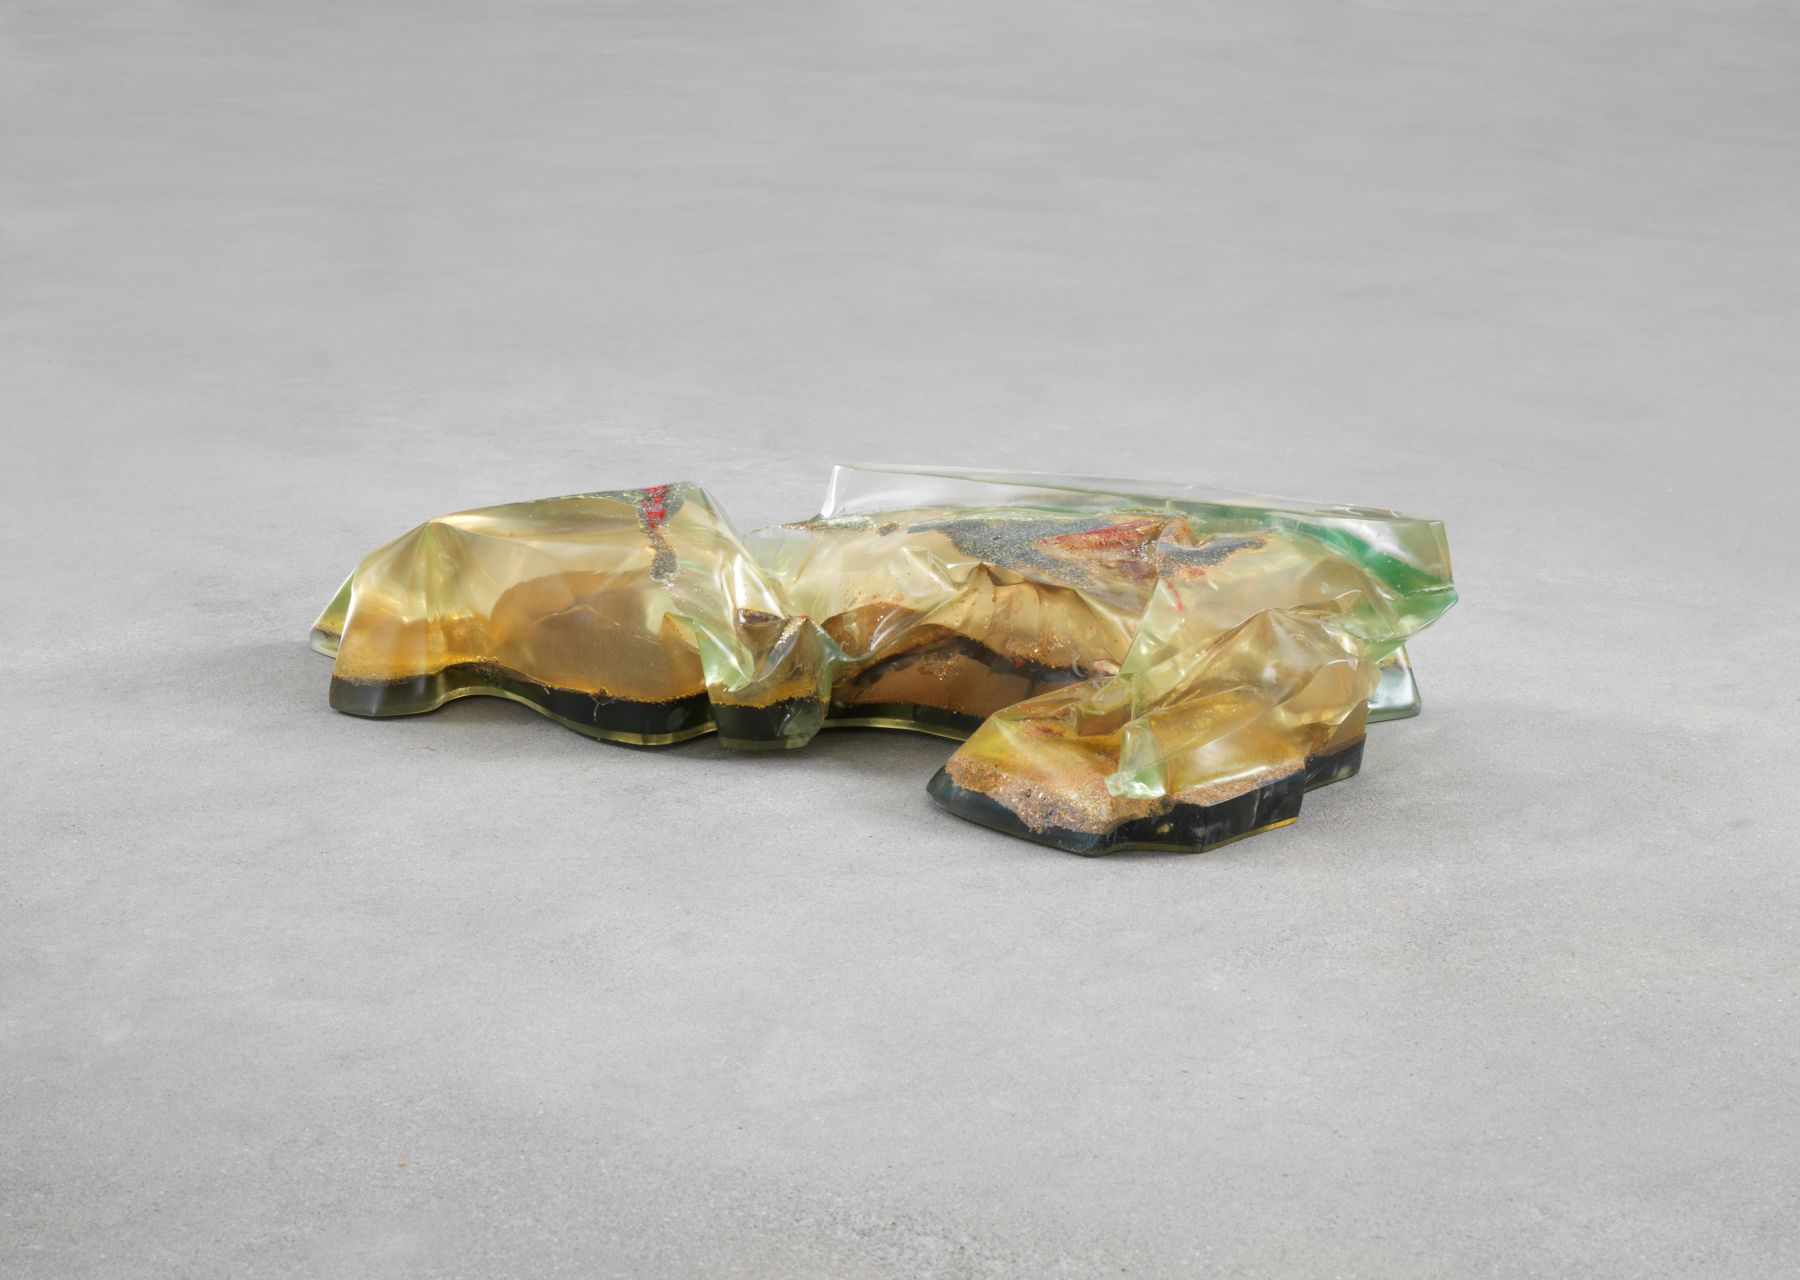 Bennington VI, 1970, Polyester resin, milled glass, plaster, glitter, and dry pigment